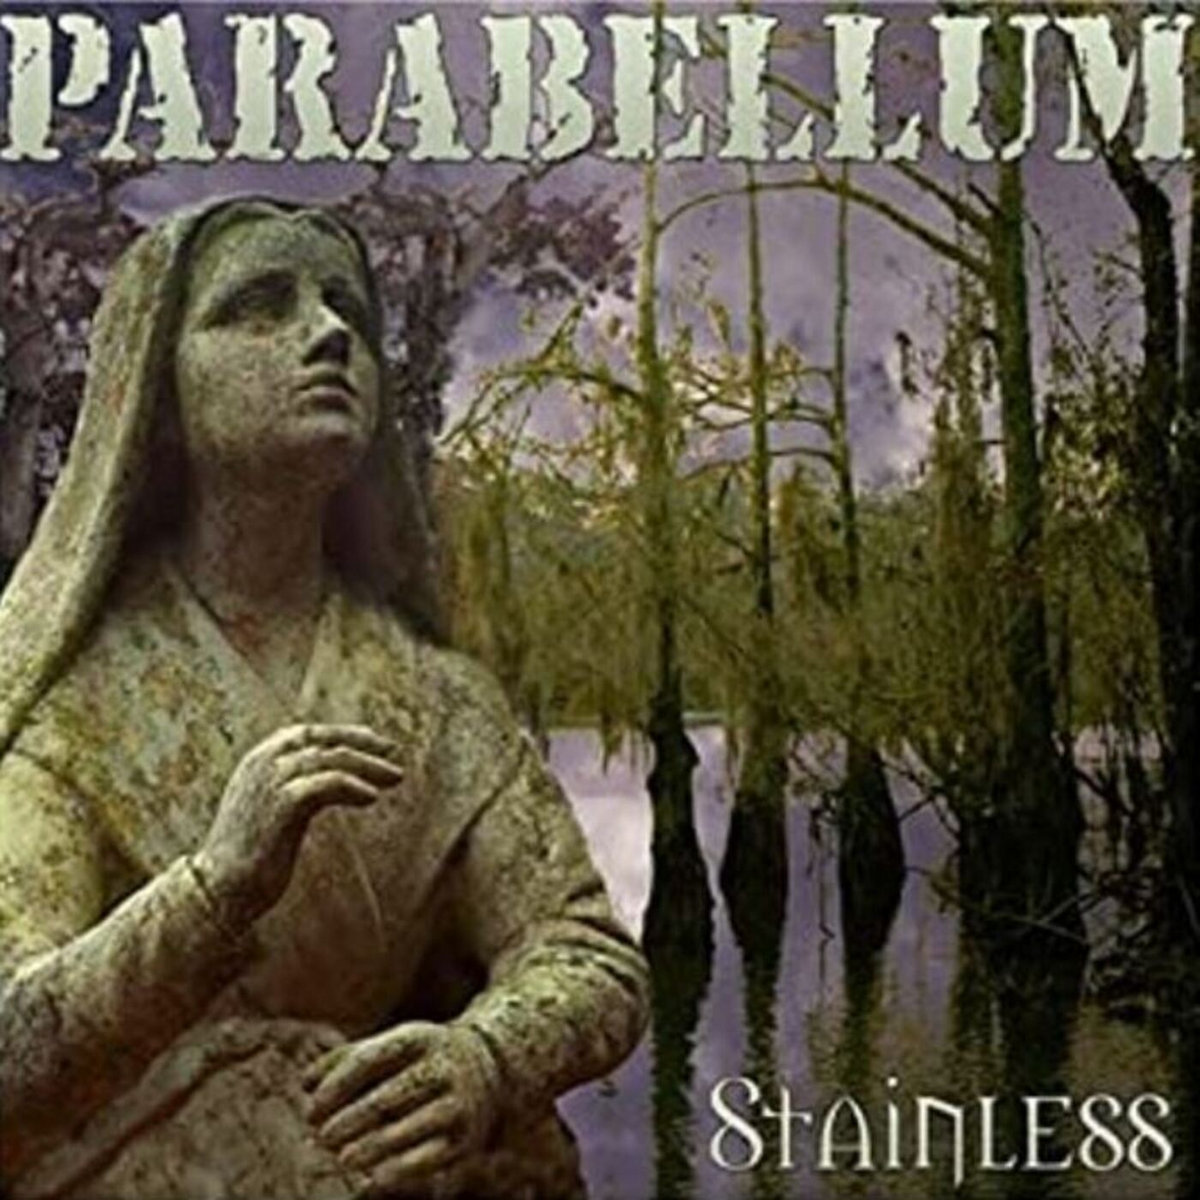 Parabellum - Stainless